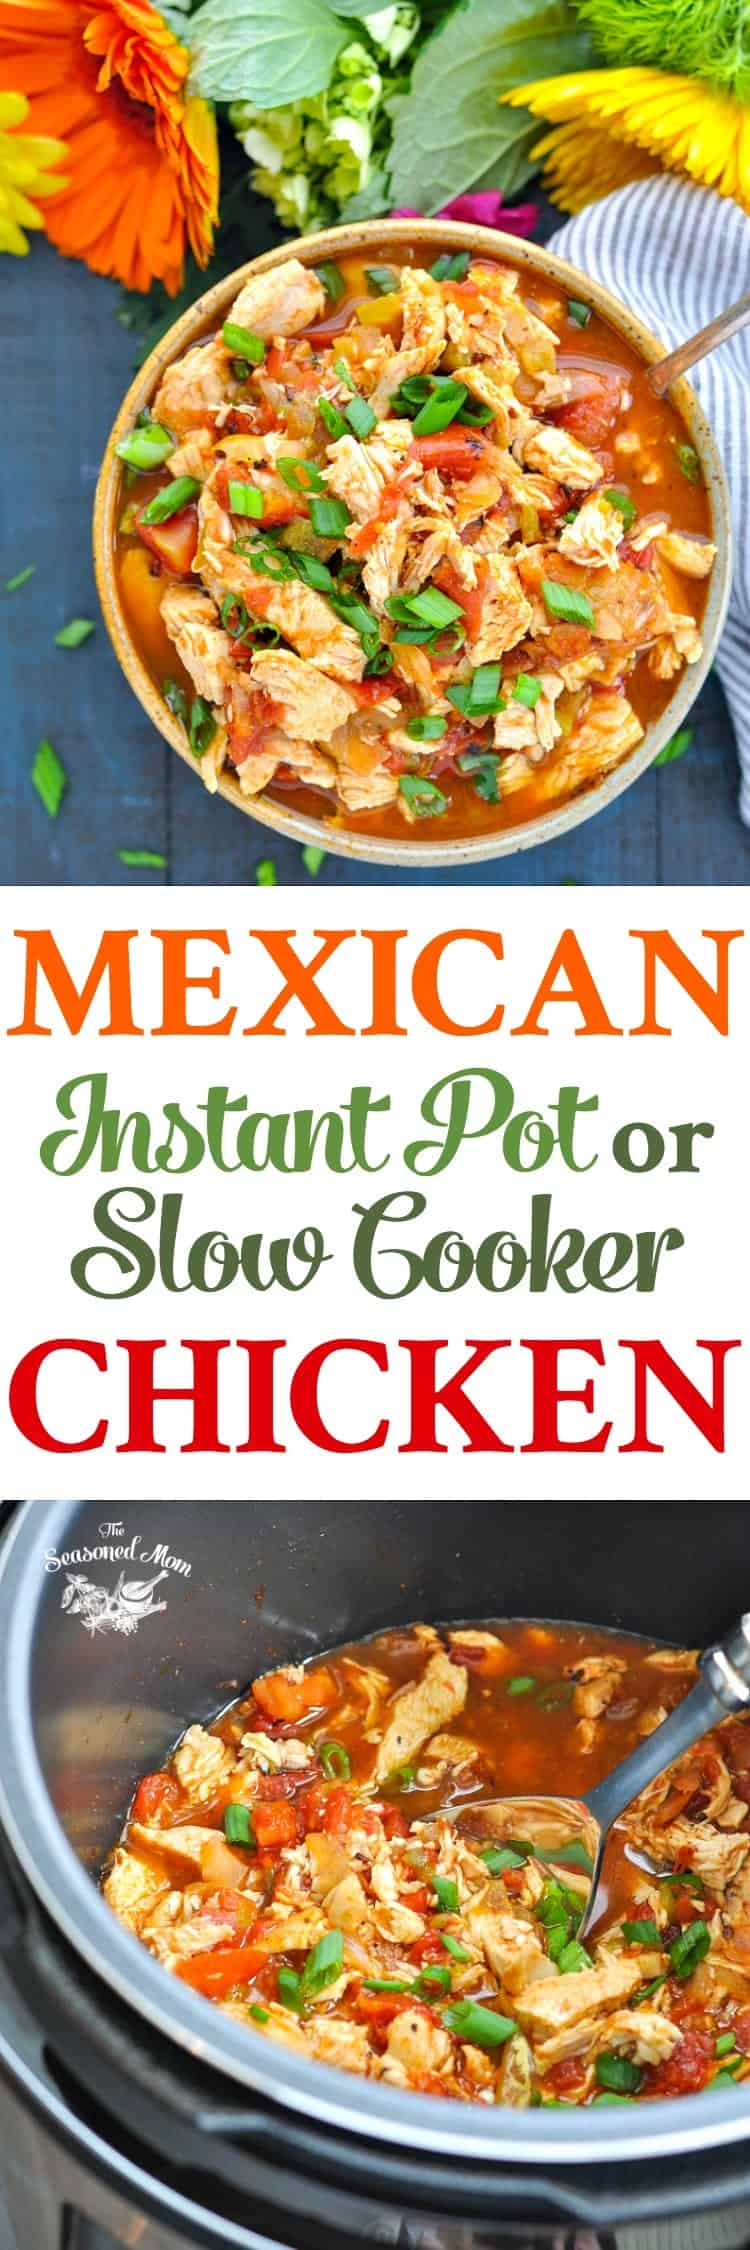 Long vertical image of Mexican Instant Pot or Slow Cooker Chicken